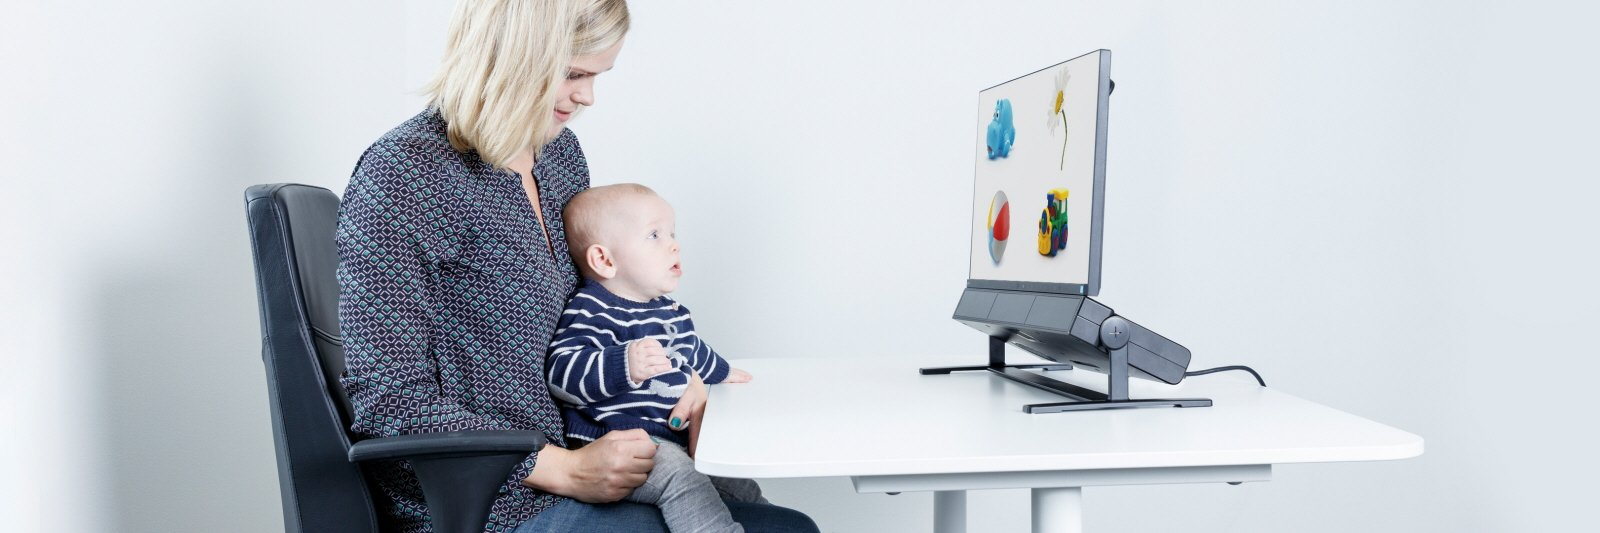 Tobii Pro spectrum eye tracker is used for a developmental research